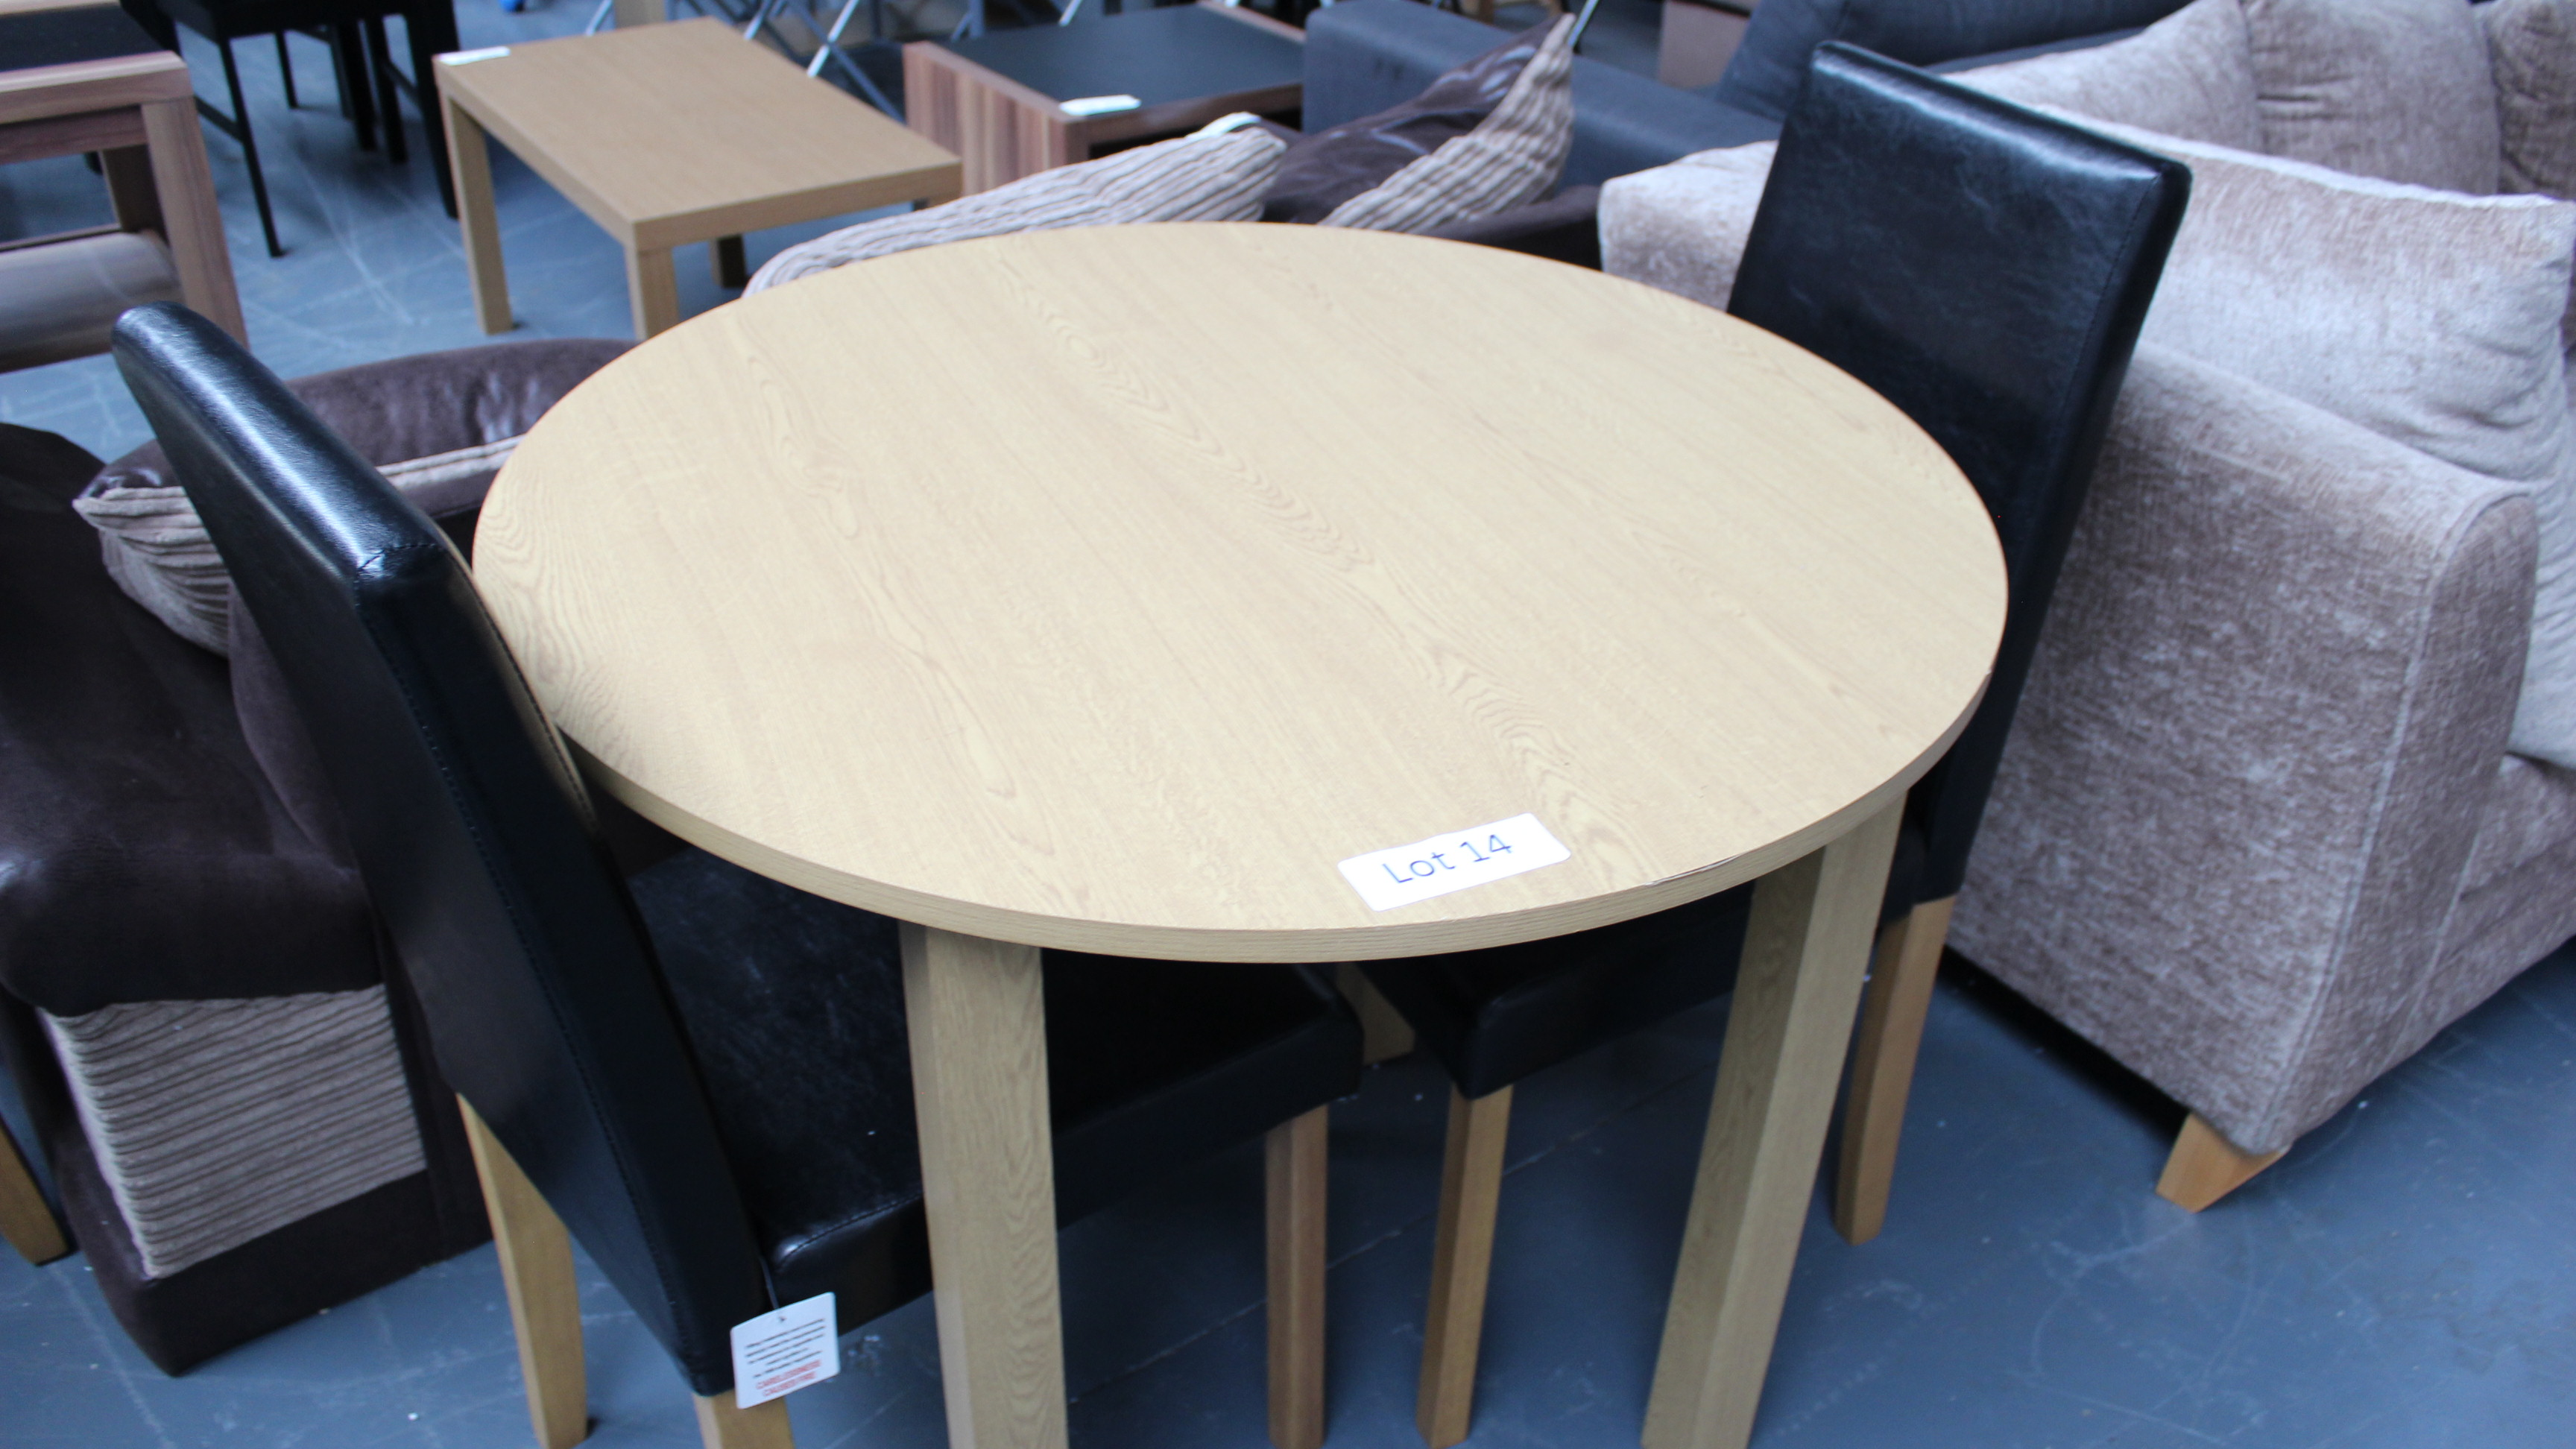 Lot 14 - Wooden Dining Table & 2 Faux Leather Chairs Customer Returns